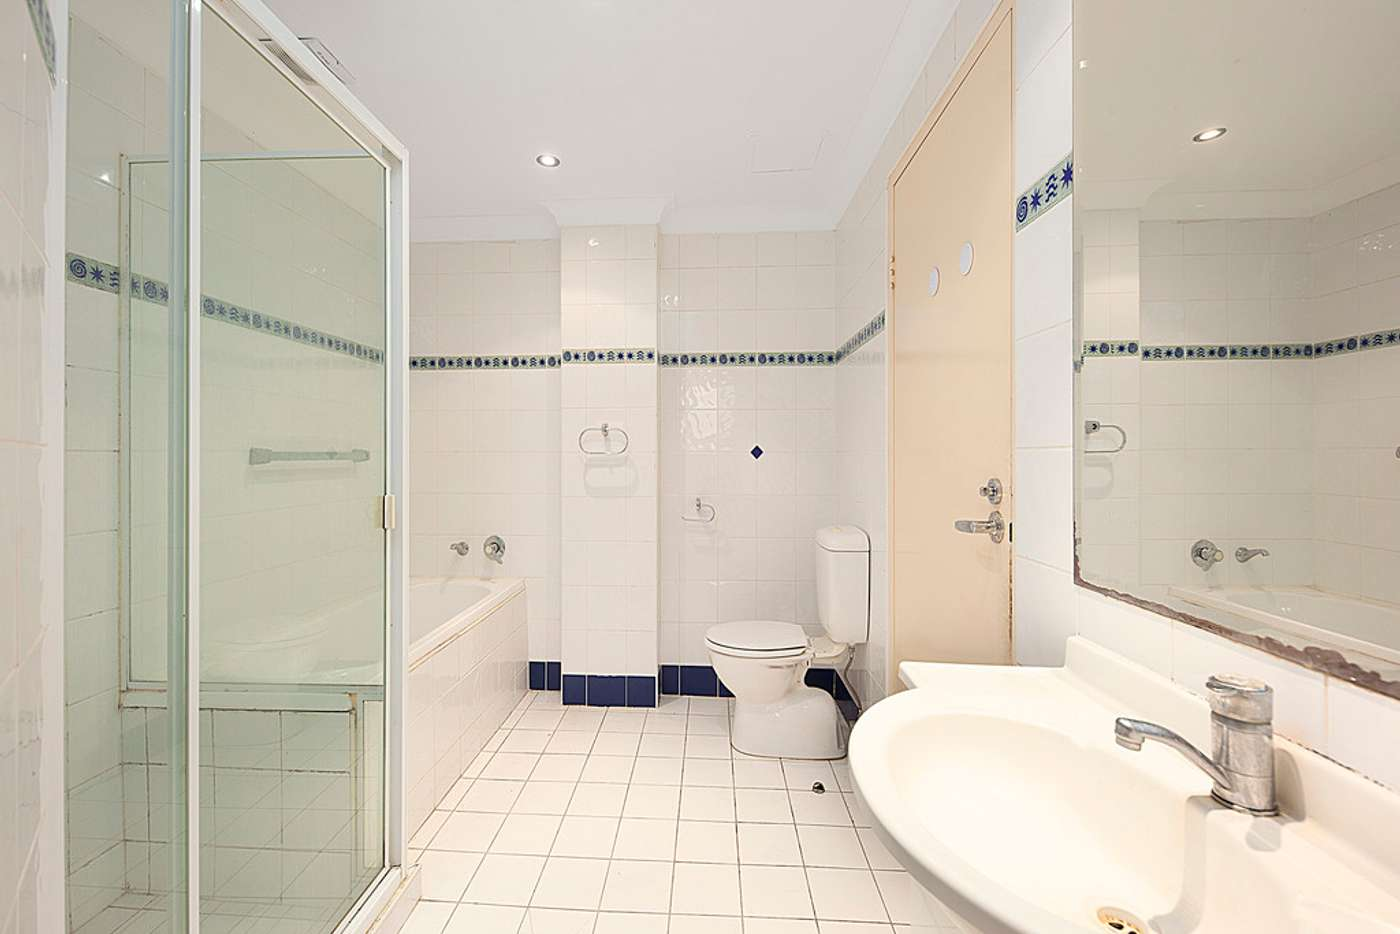 Fifth view of Homely apartment listing, 34/805 ANZAC PARADE, Maroubra NSW 2035